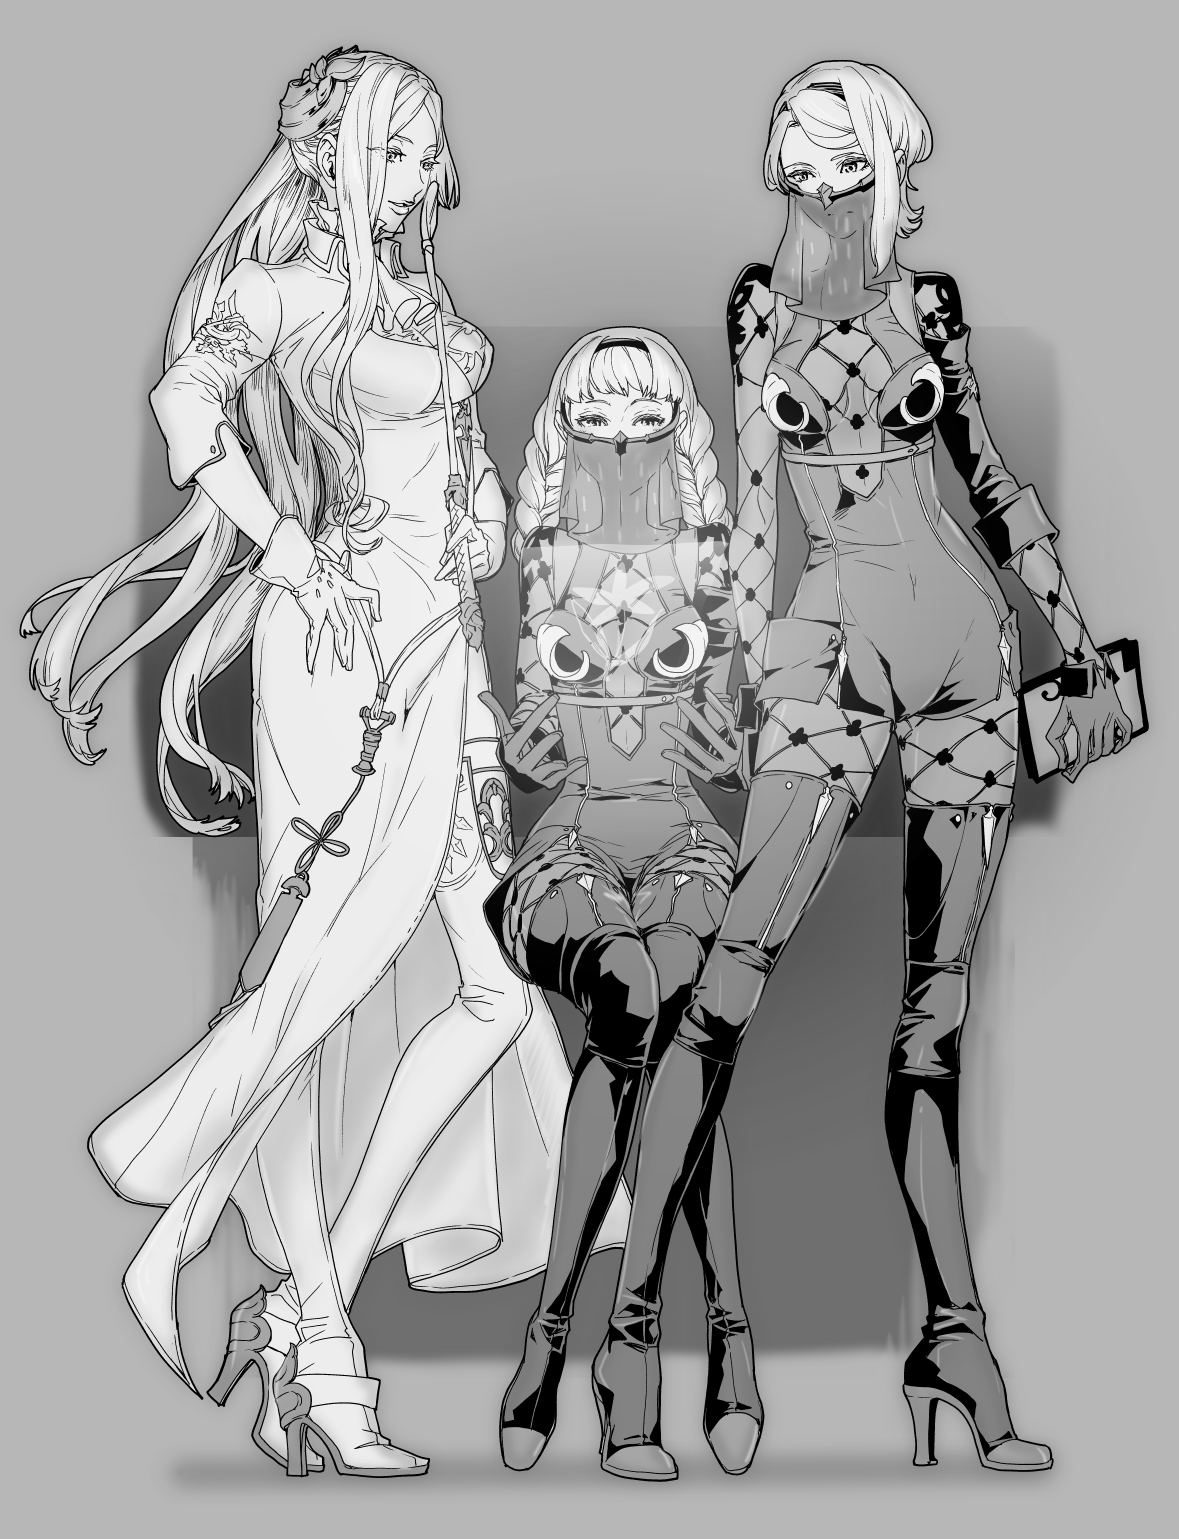 YoRHa Unit Commander, Operators 6O and 21O